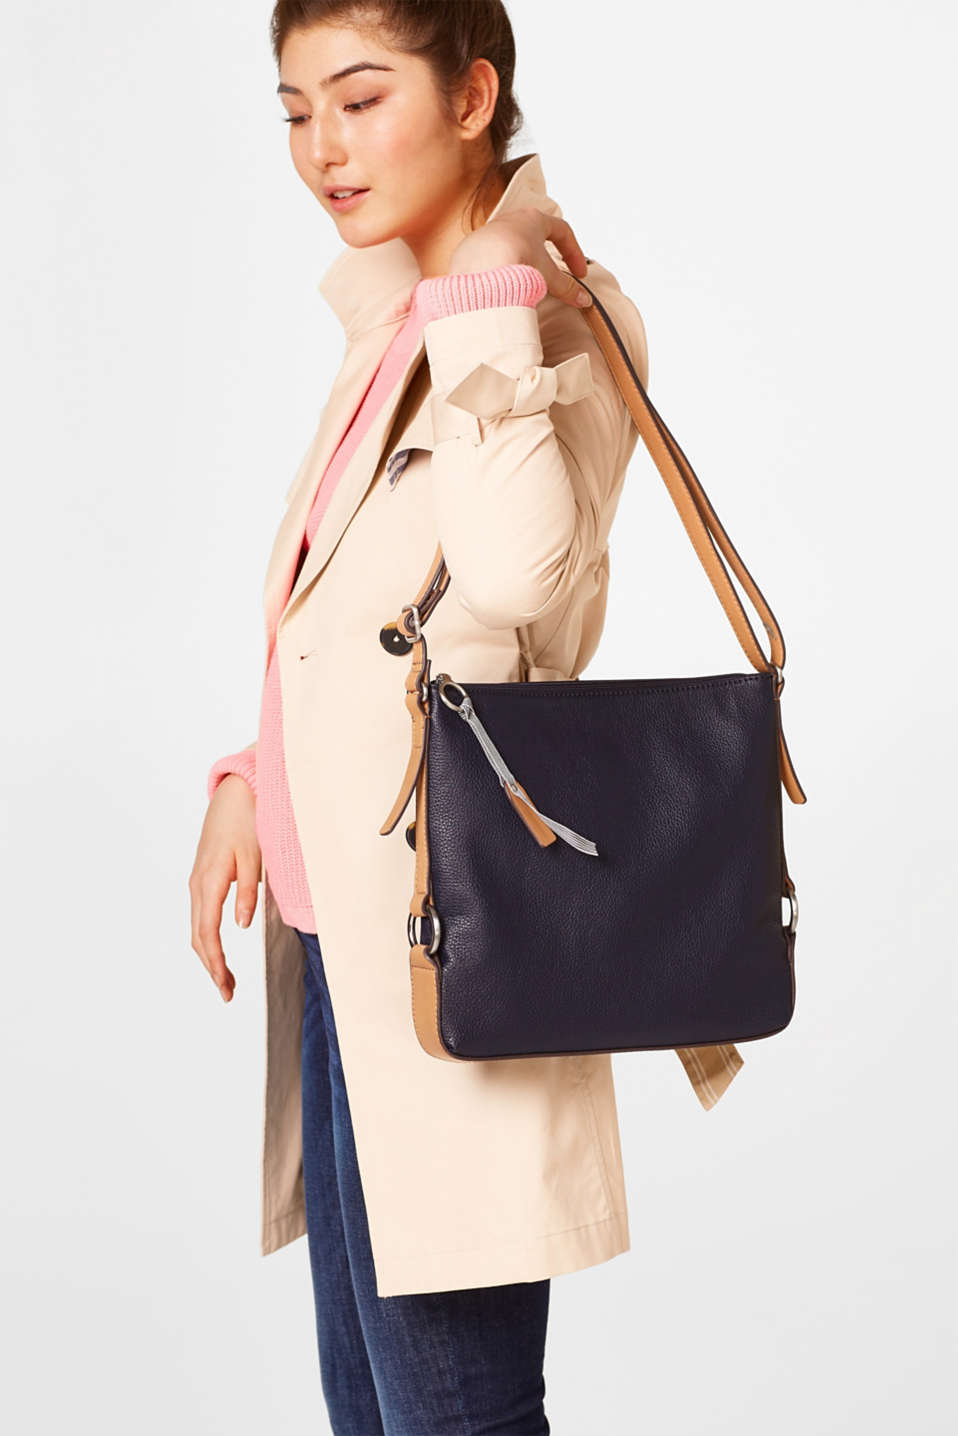 Shoulder bag in grainy faux leather